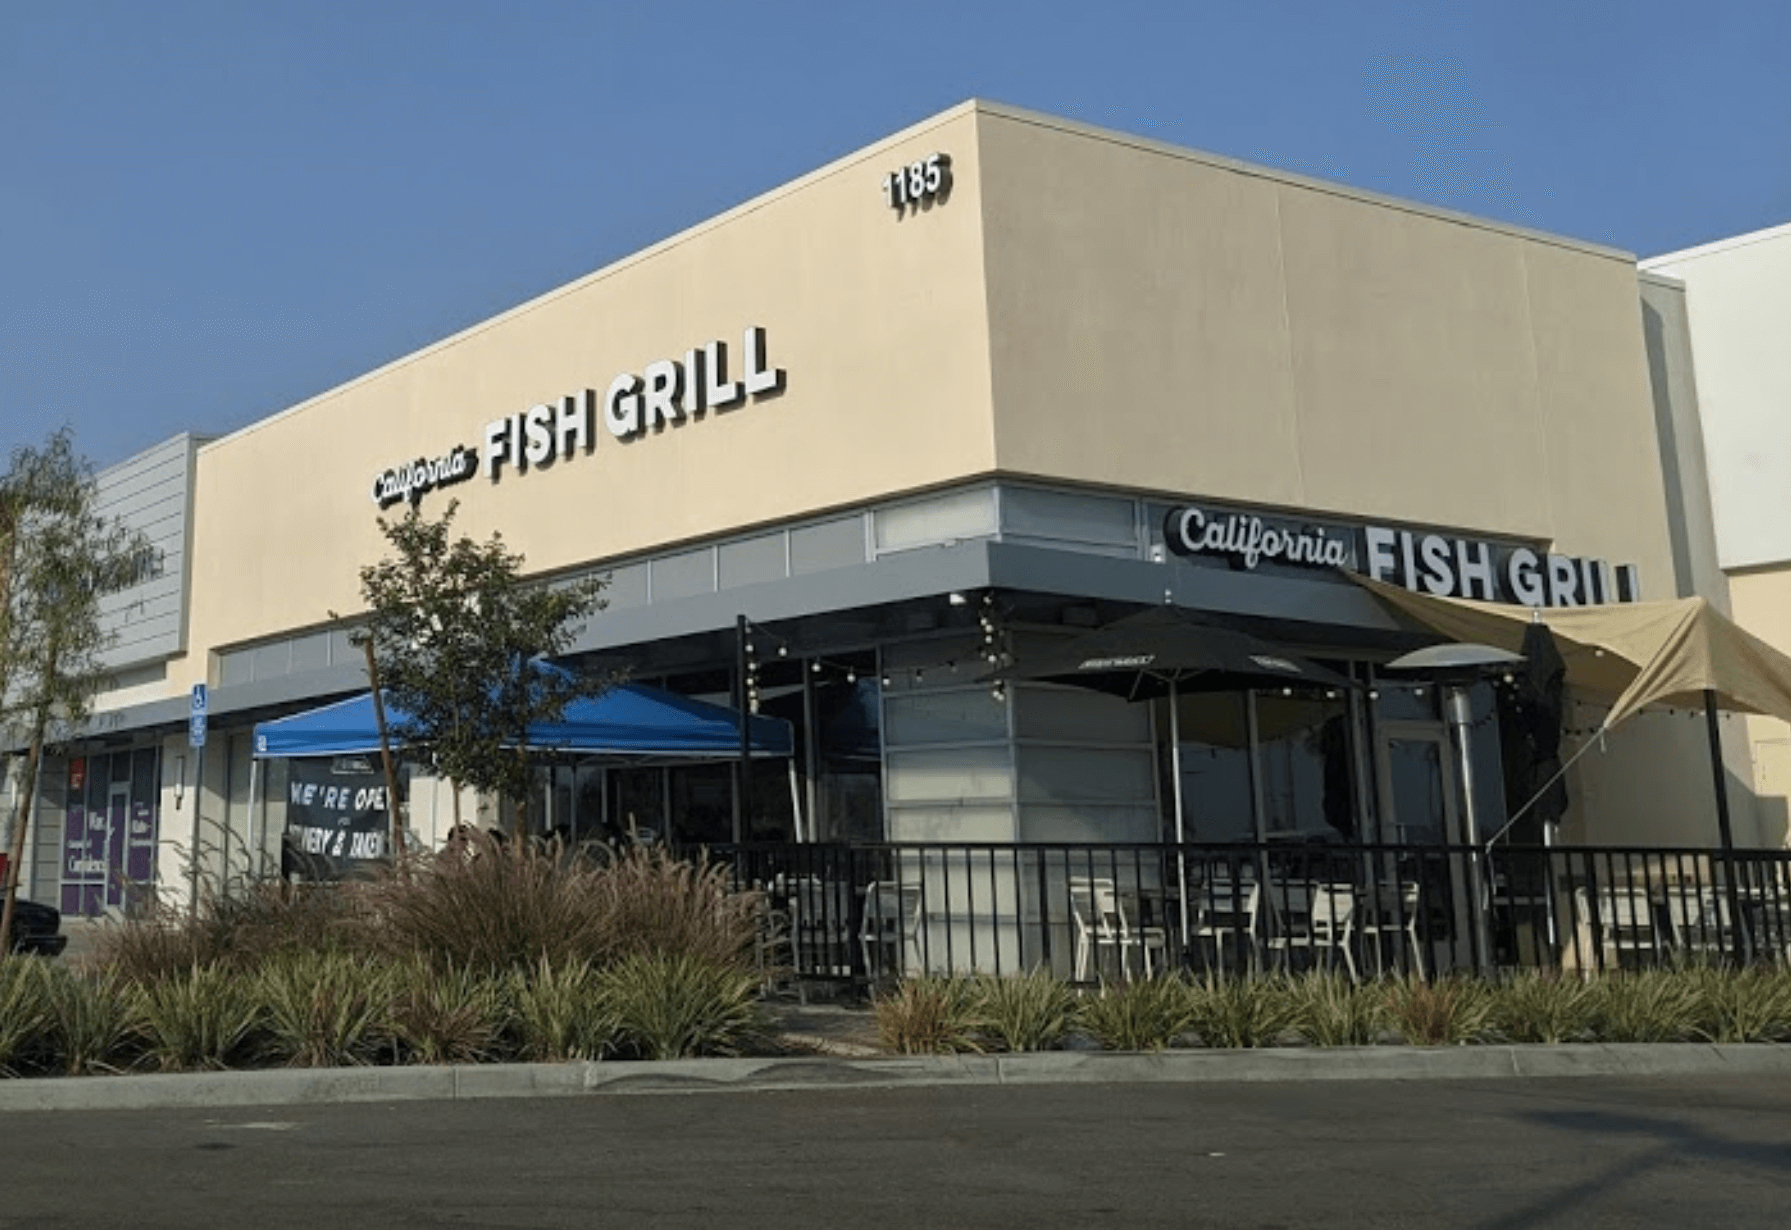 California Fish Grill in Rialto California Renaissance Marketplace Architectural Metal Canopies by BlackCoffee Sign Fabricators San Bernardino Los Angeles Front2